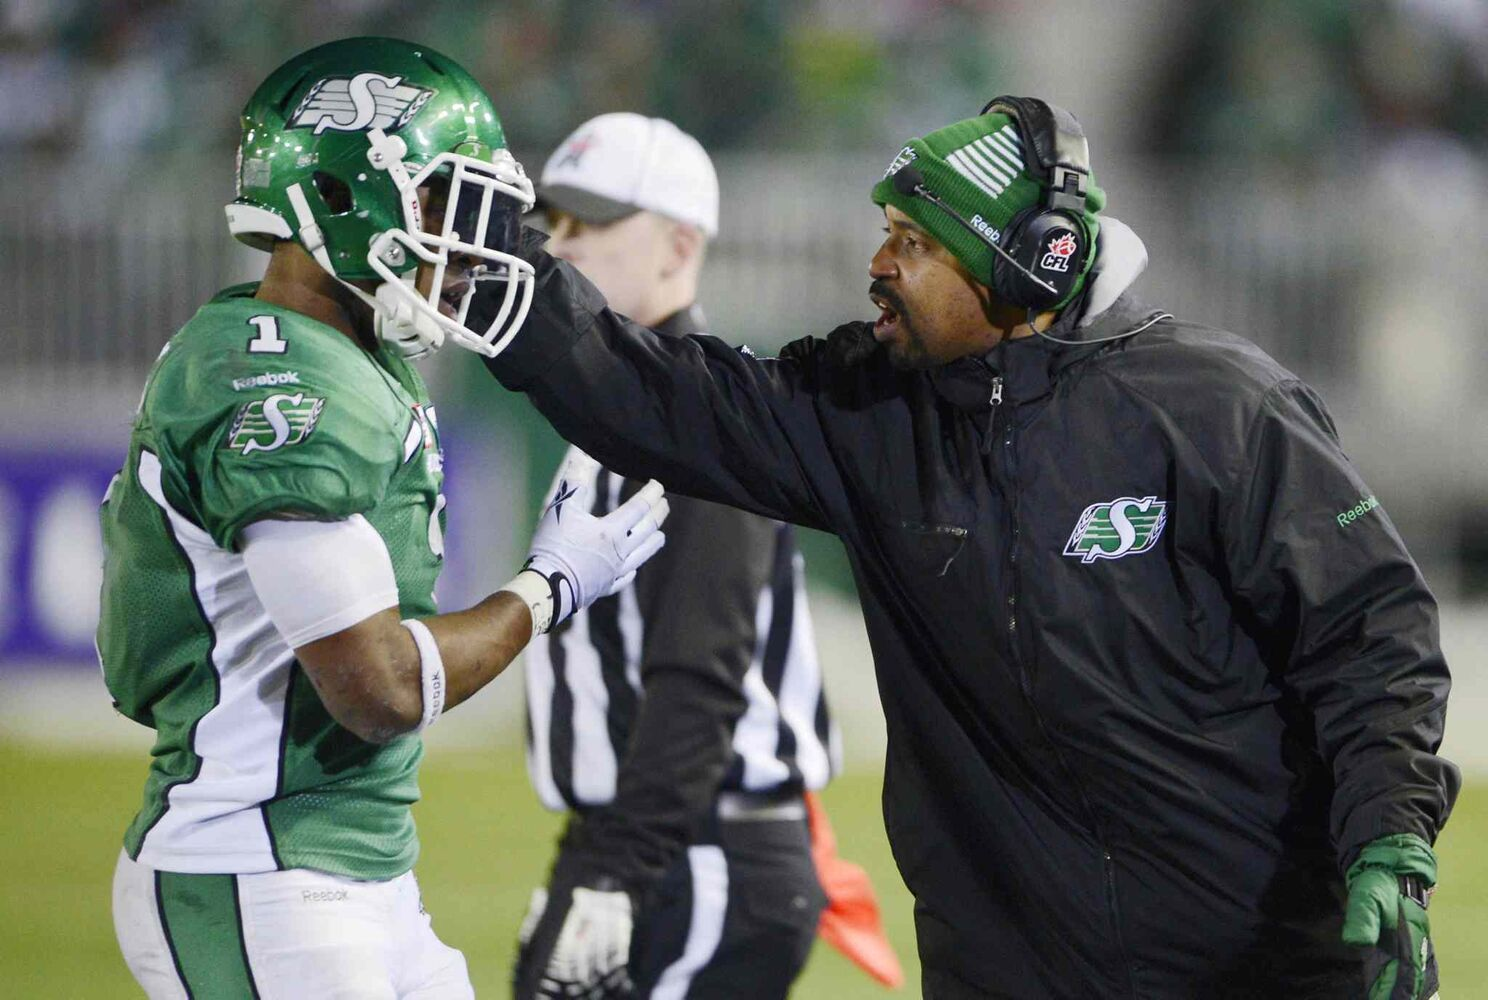 Saskatchewan Roughriders quarterbacks coach Khari Jones (right) talks to Roughriders running back Kory Sheets during the fourth quarter.